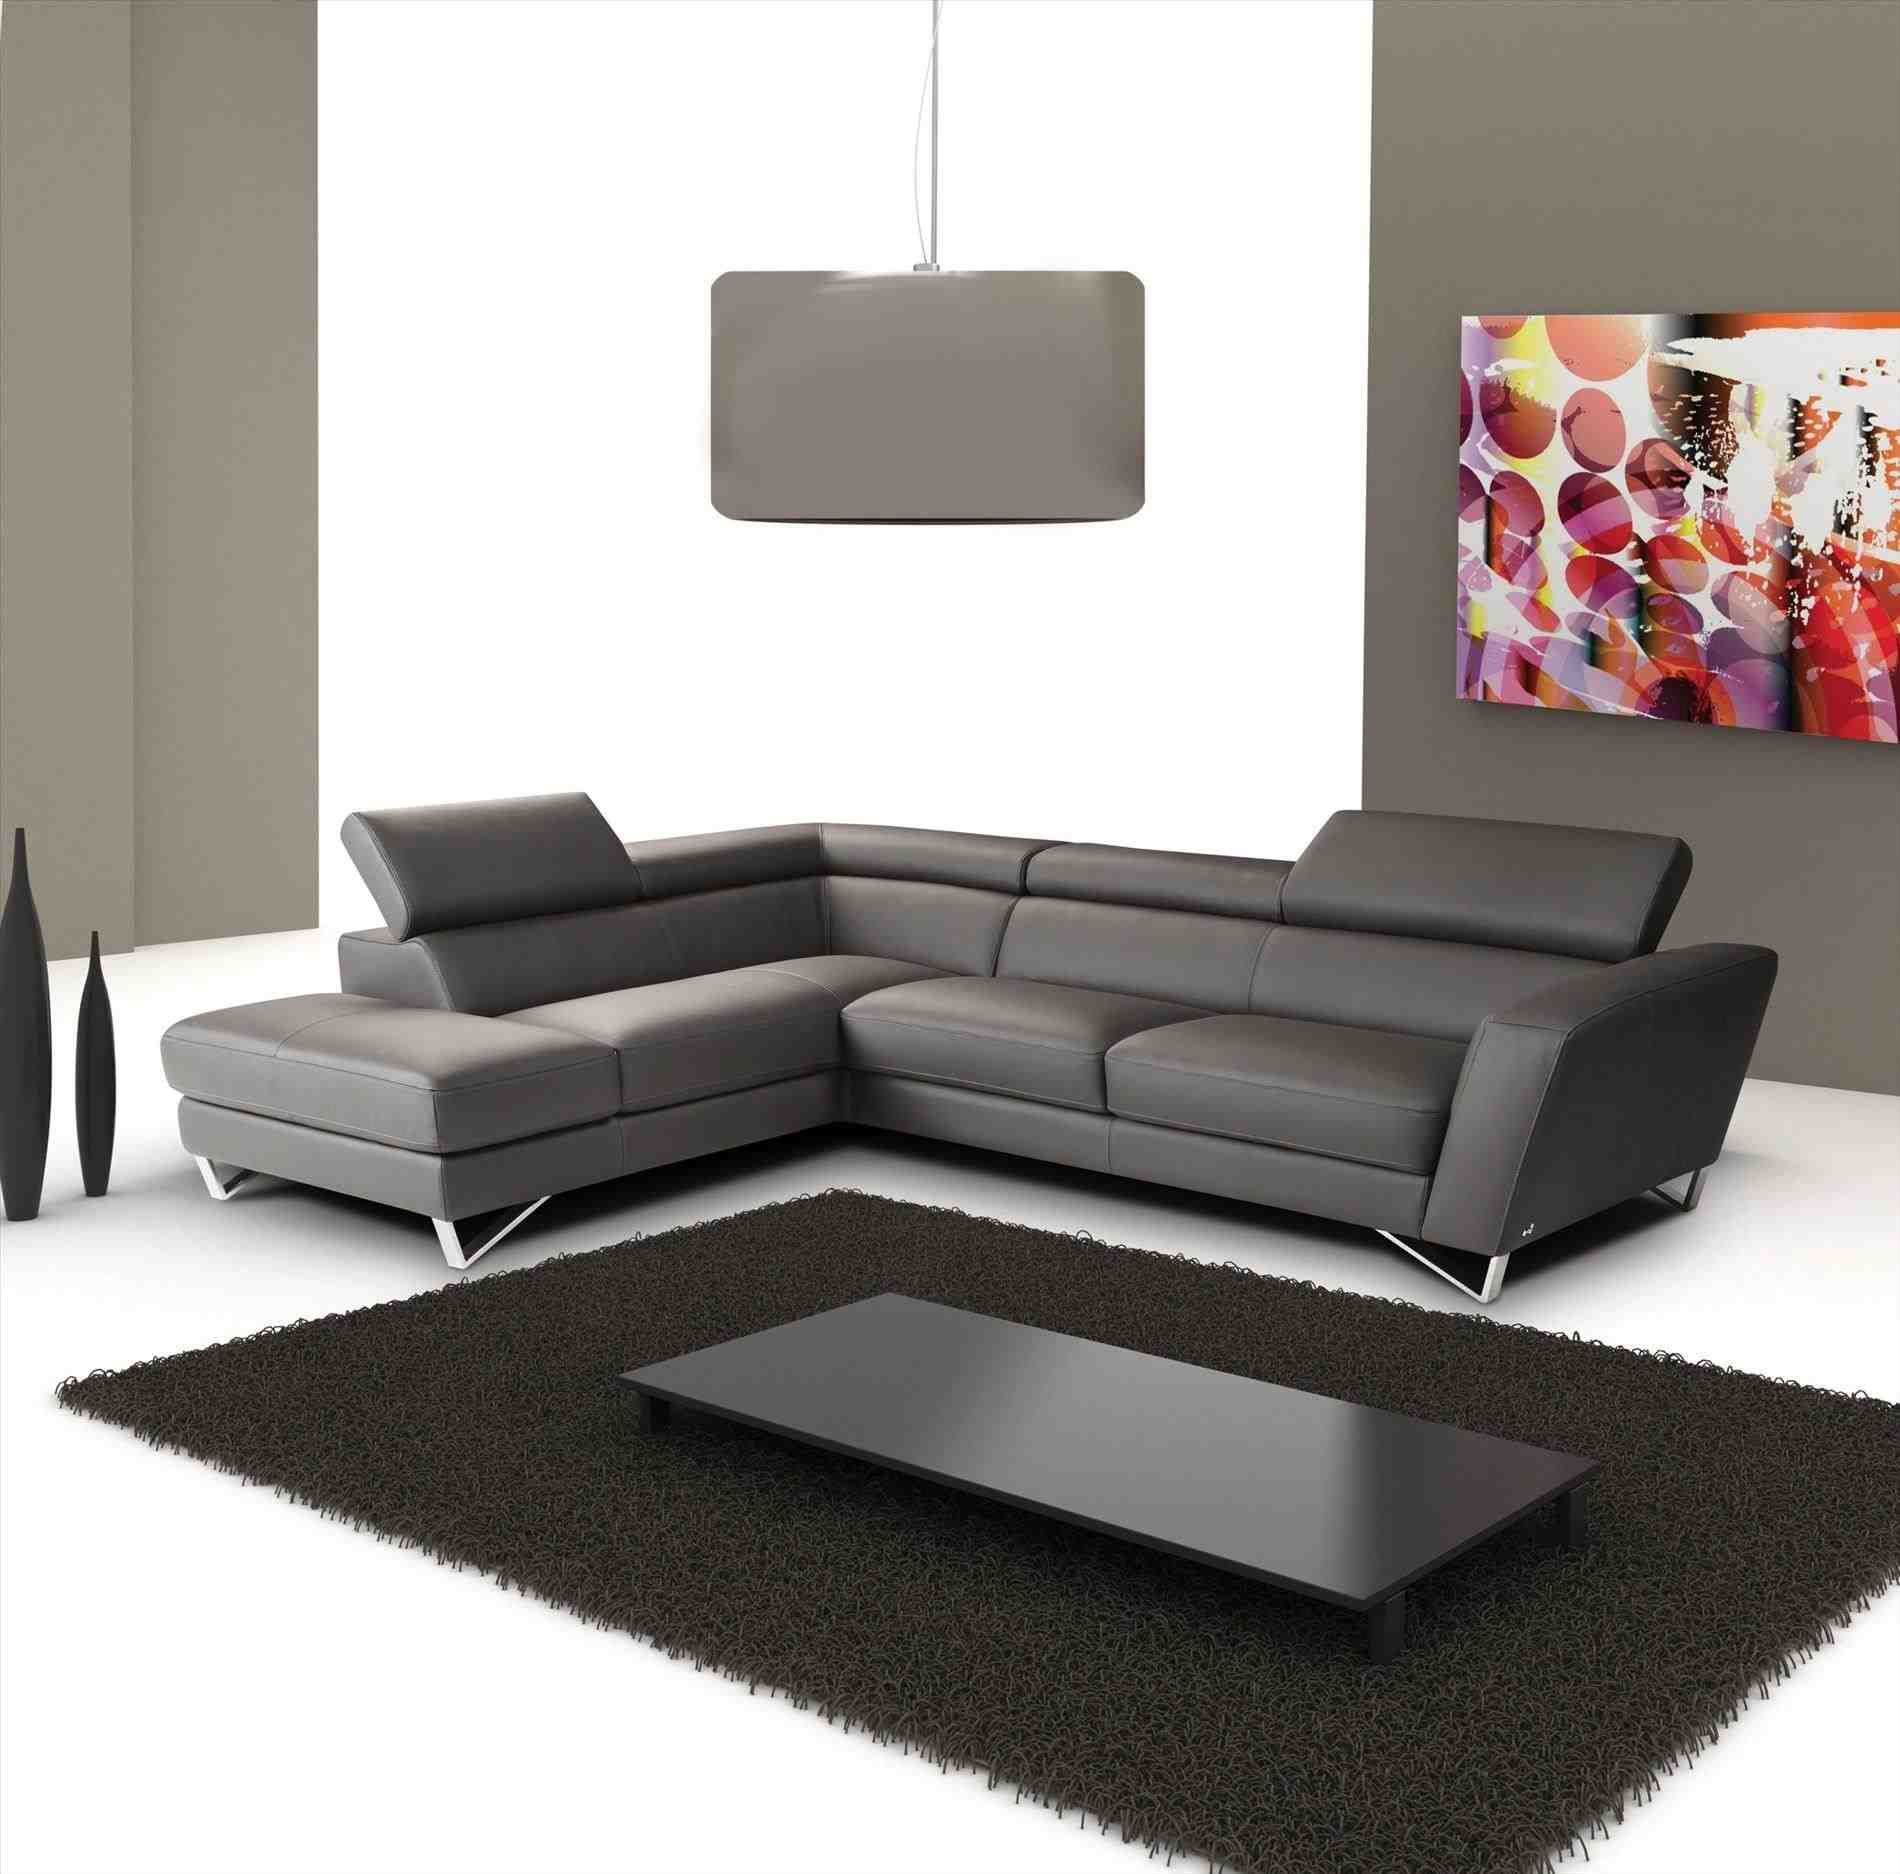 Cheap Modern Furniture Johannesburg Full Size Of Dining Room